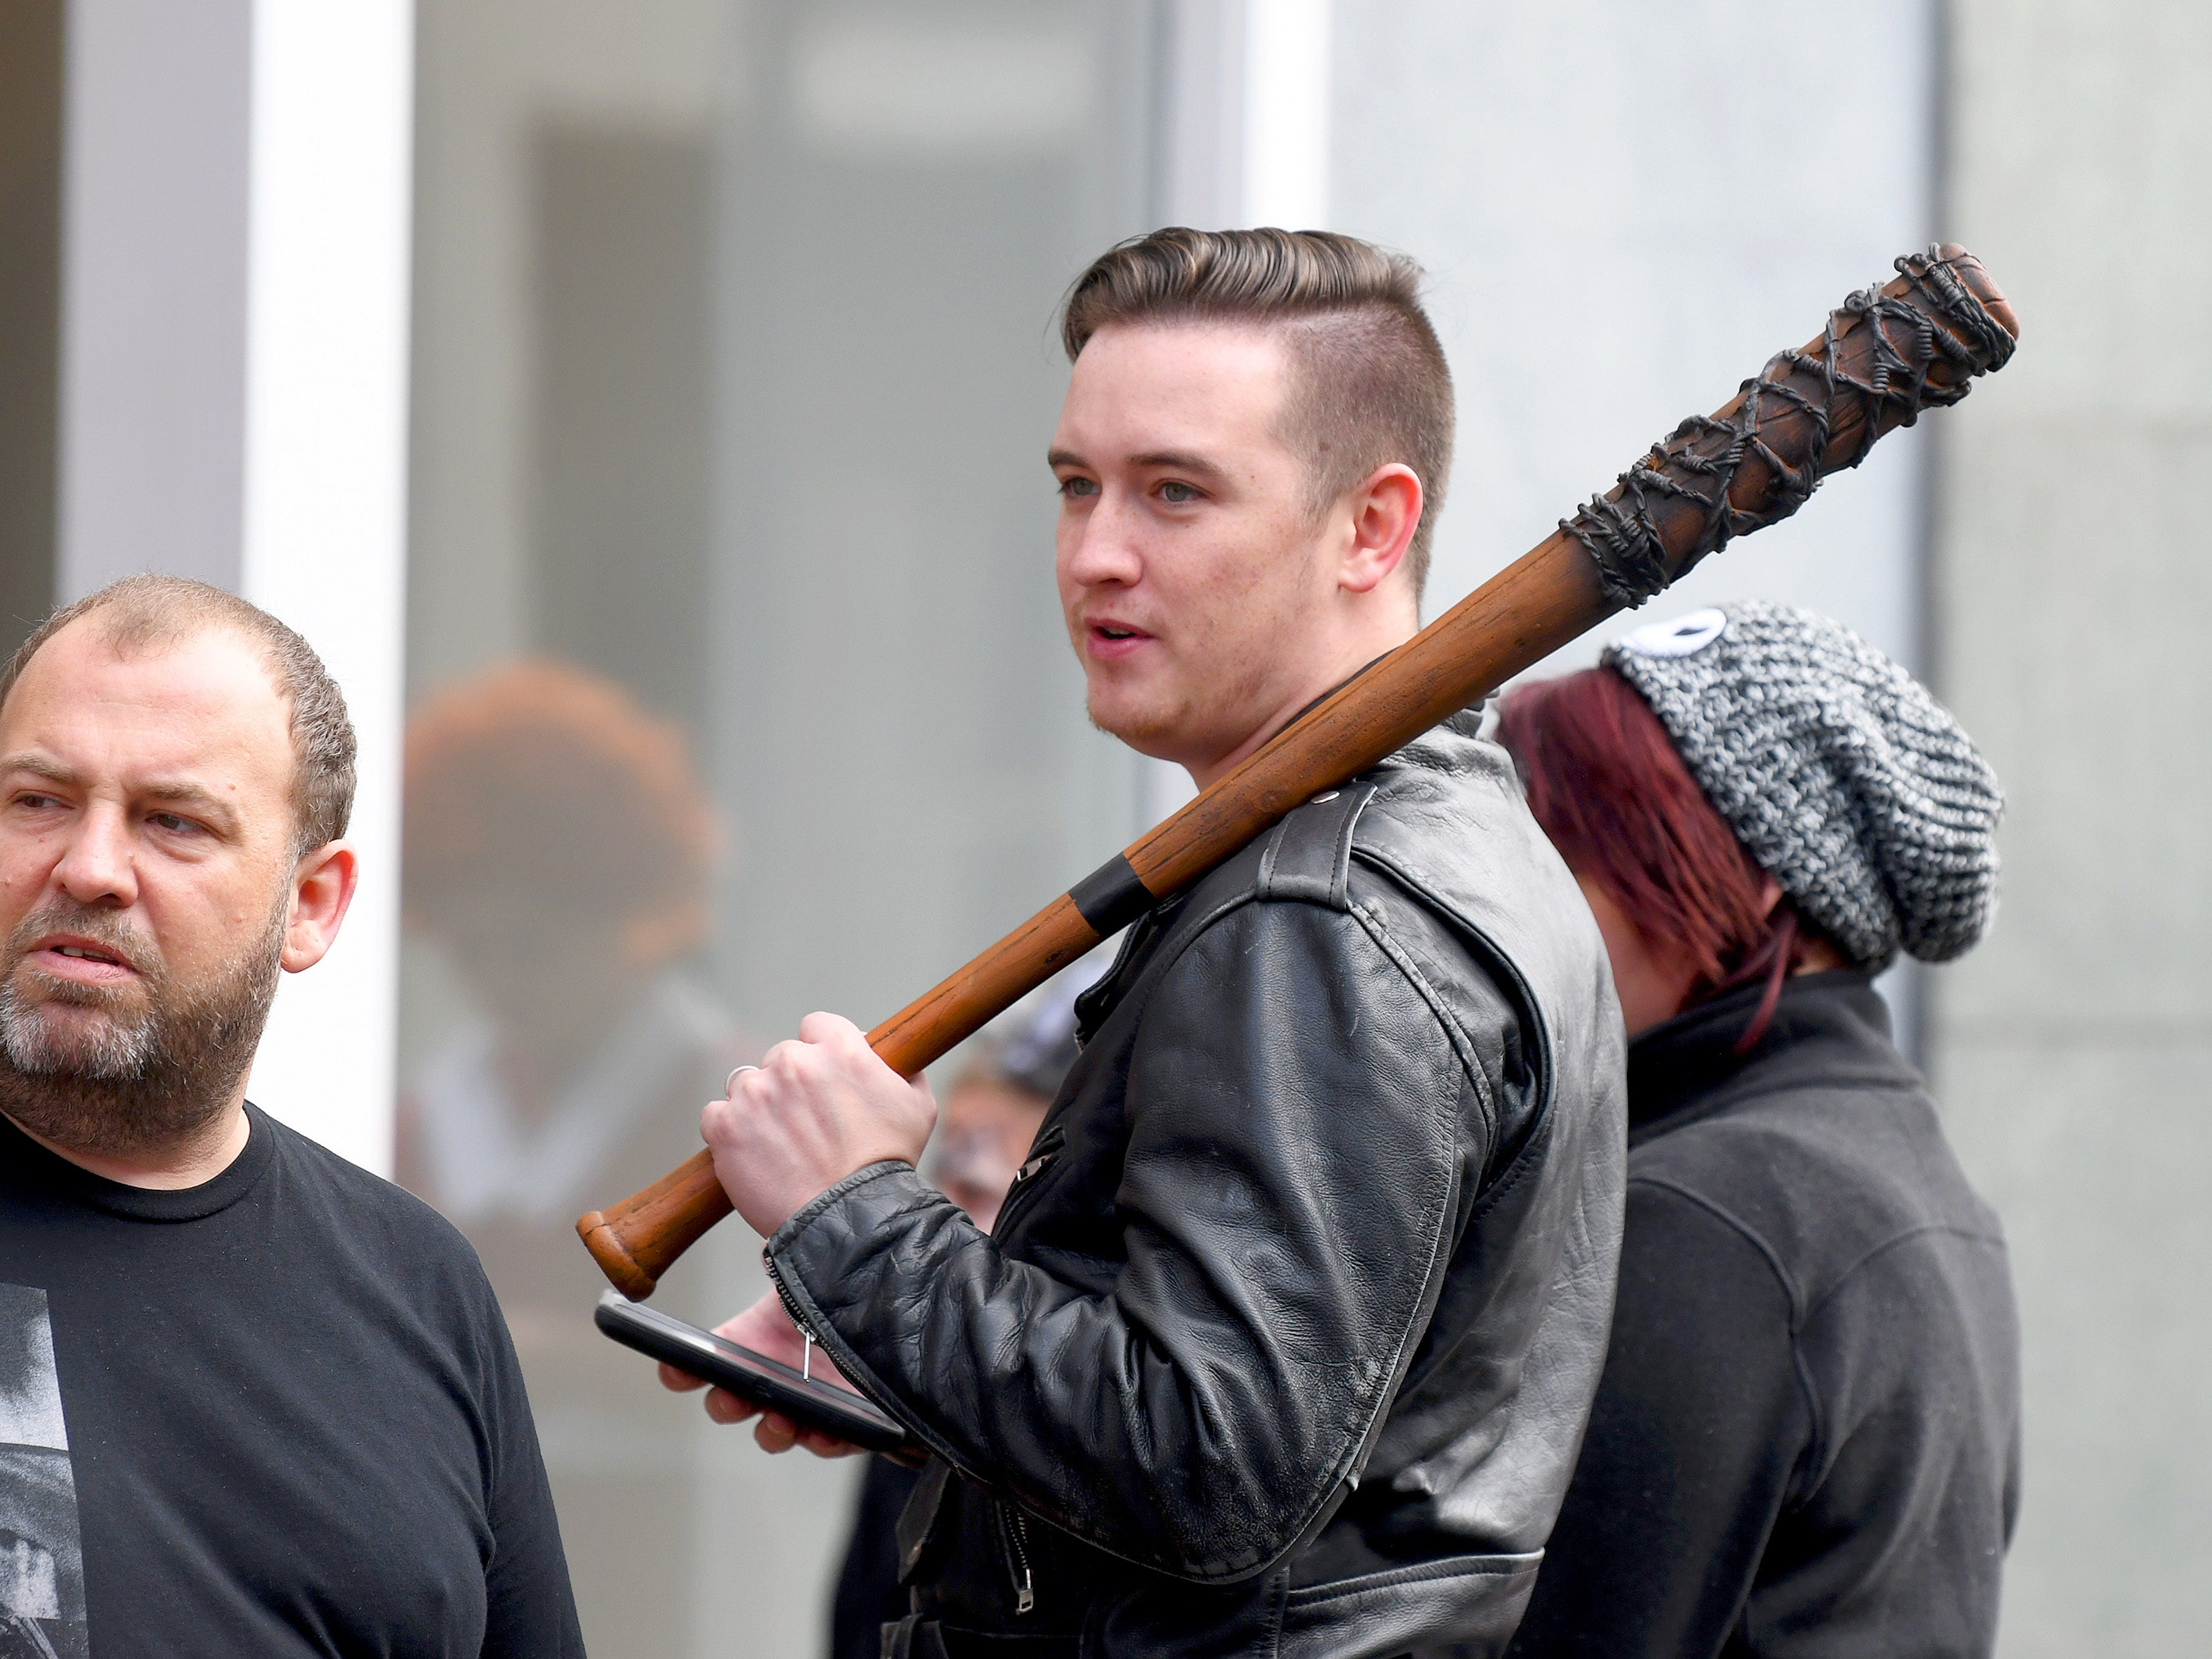 Kids aren't the only ones in costume. Negan from the Walking Dead holds his beloved baseball bat, Lucille, during the annual downtown trick-or-treating event in Staunton on Saturday, Oct. 27, 2018.